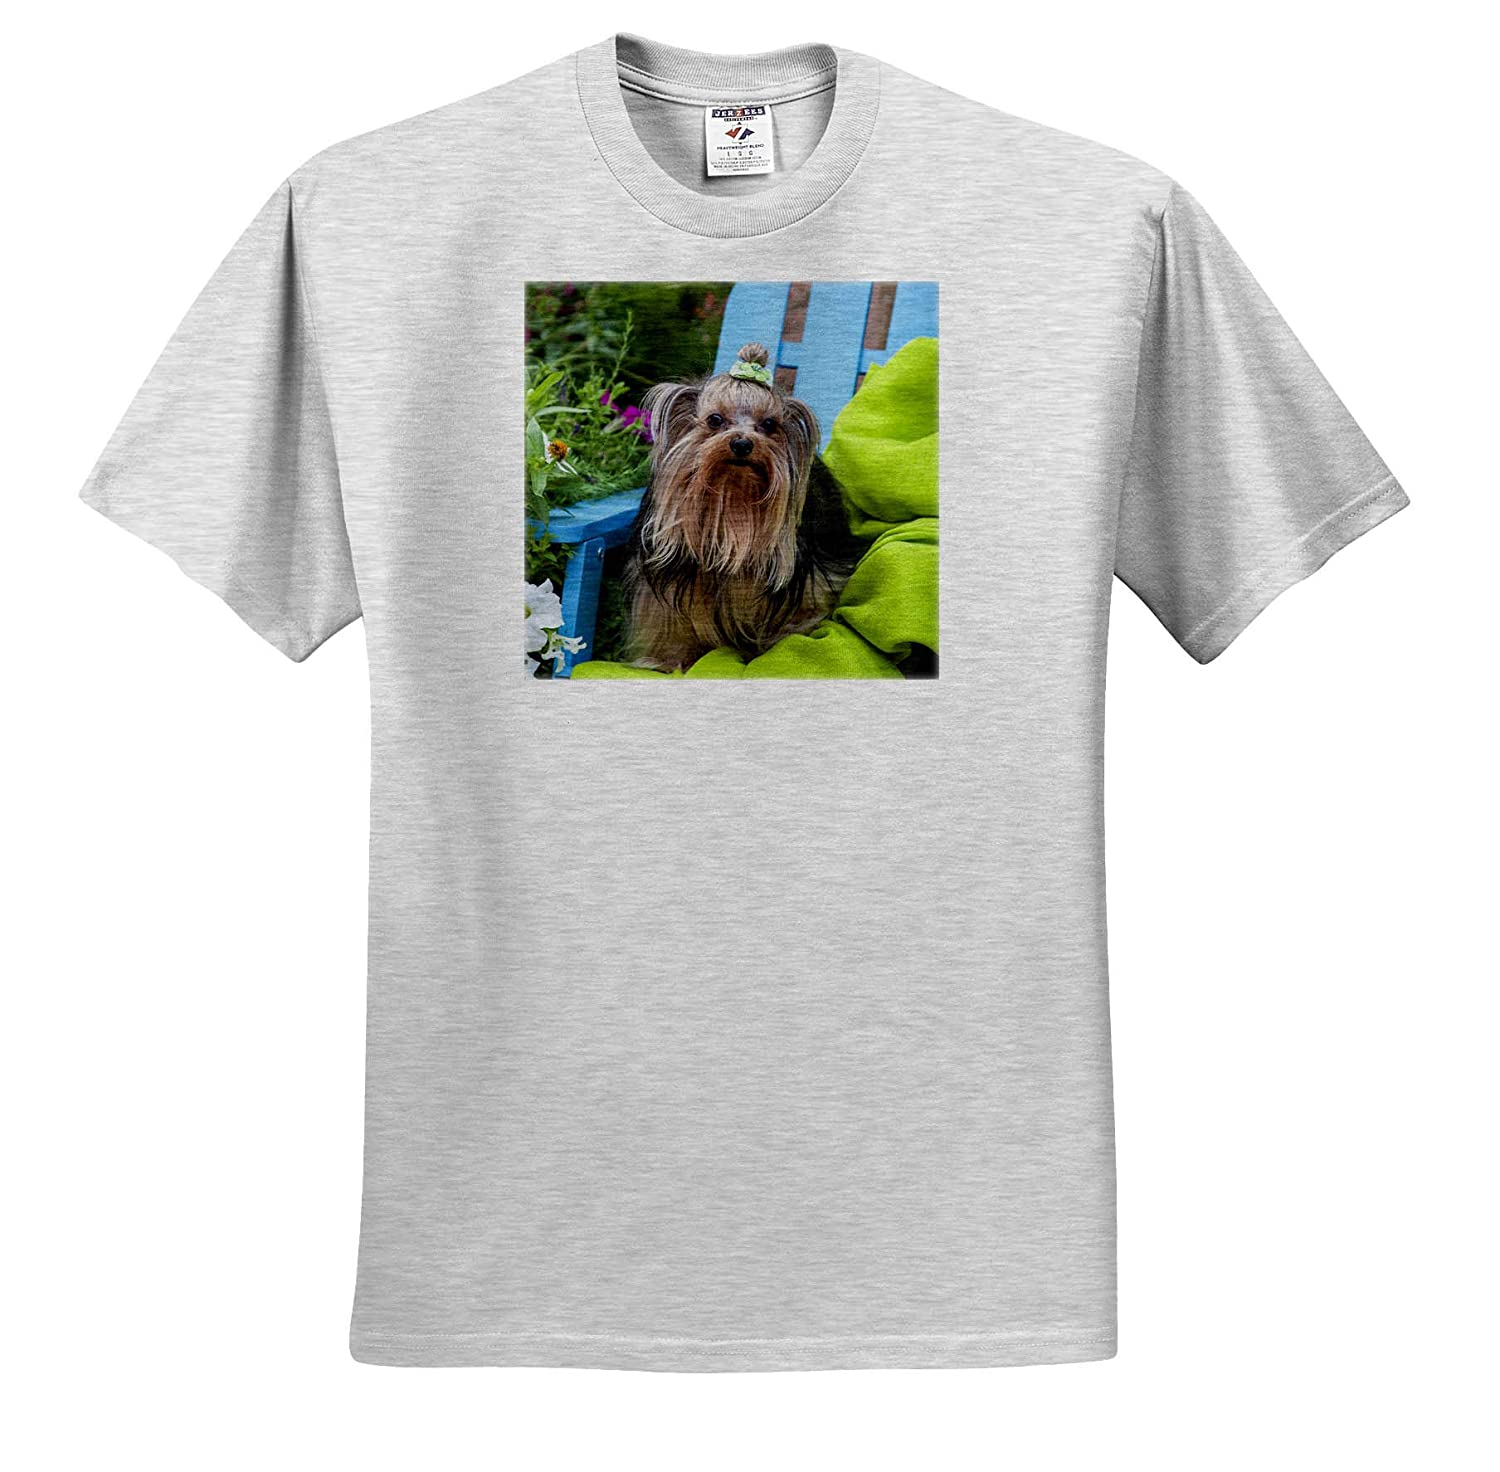 Dogs 3dRose Danita Delimont Adult T-Shirt XL Yorkshire Terrier Sitting on Blue Chair with Green Fabric ts/_314004